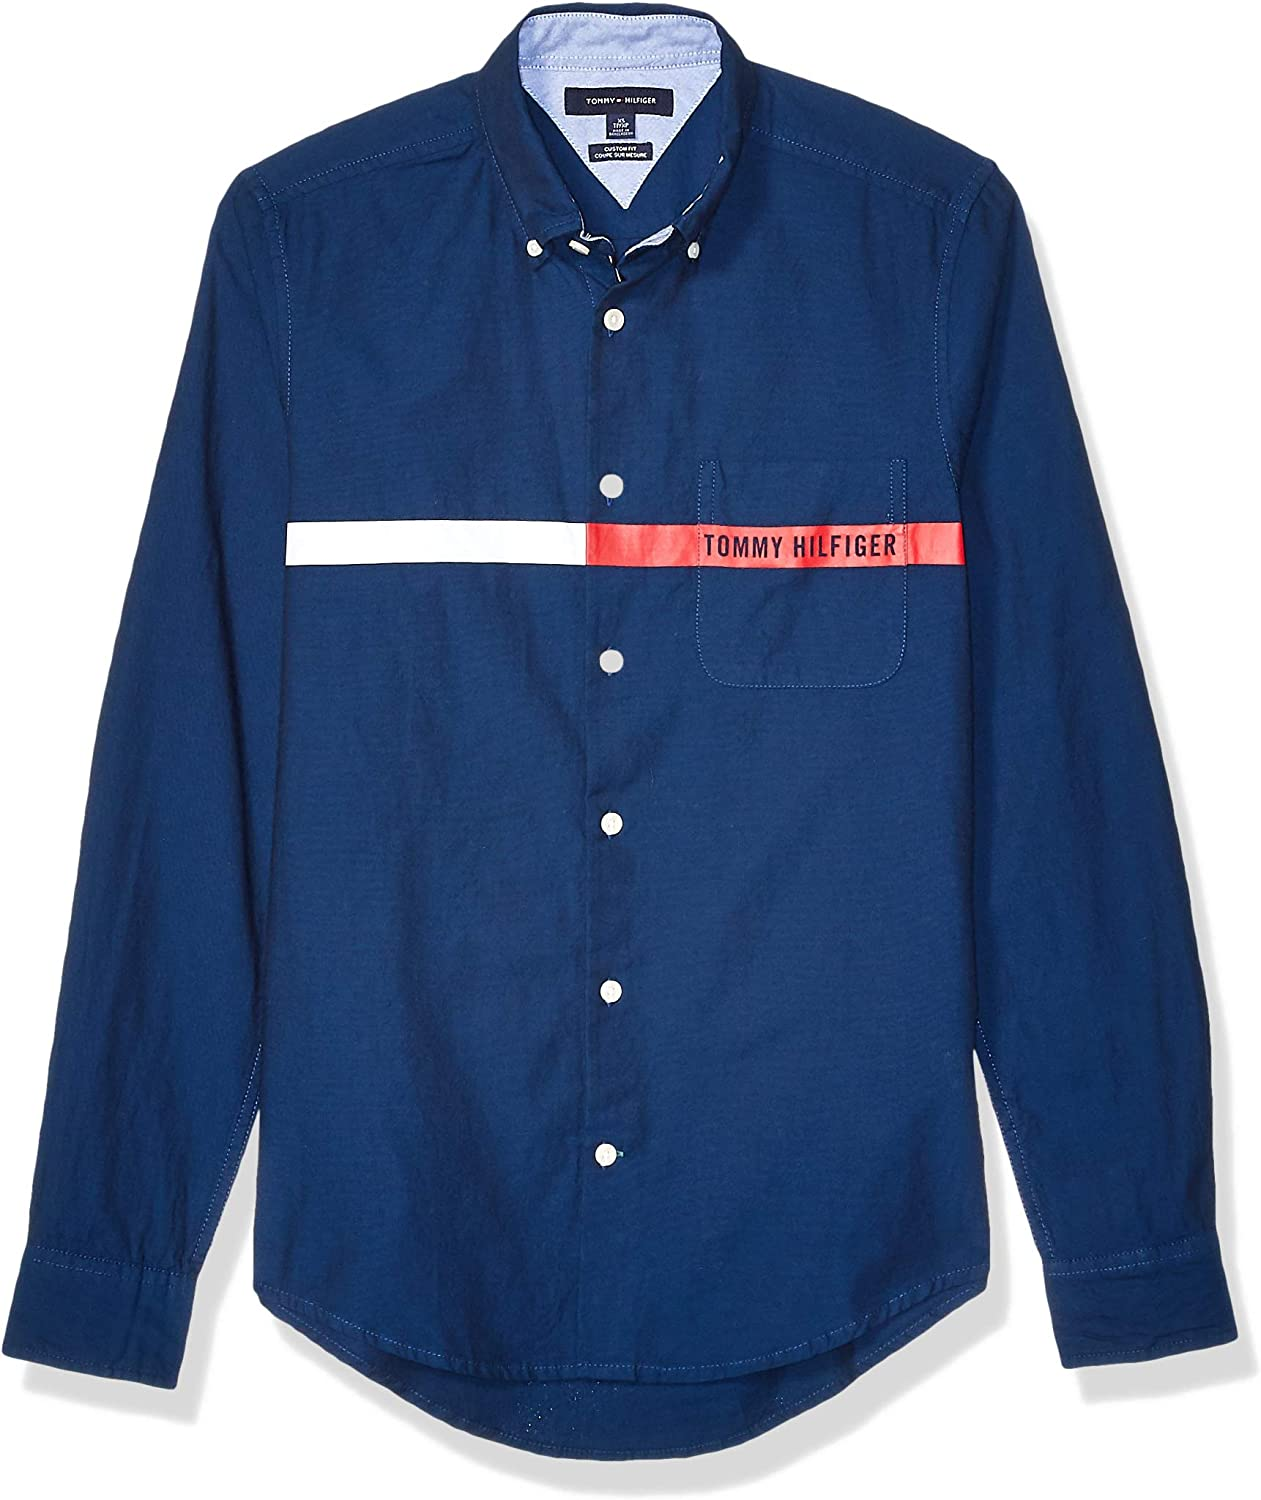 Tommy Hilfiger Mens Long Sleeve Button Down Shirt